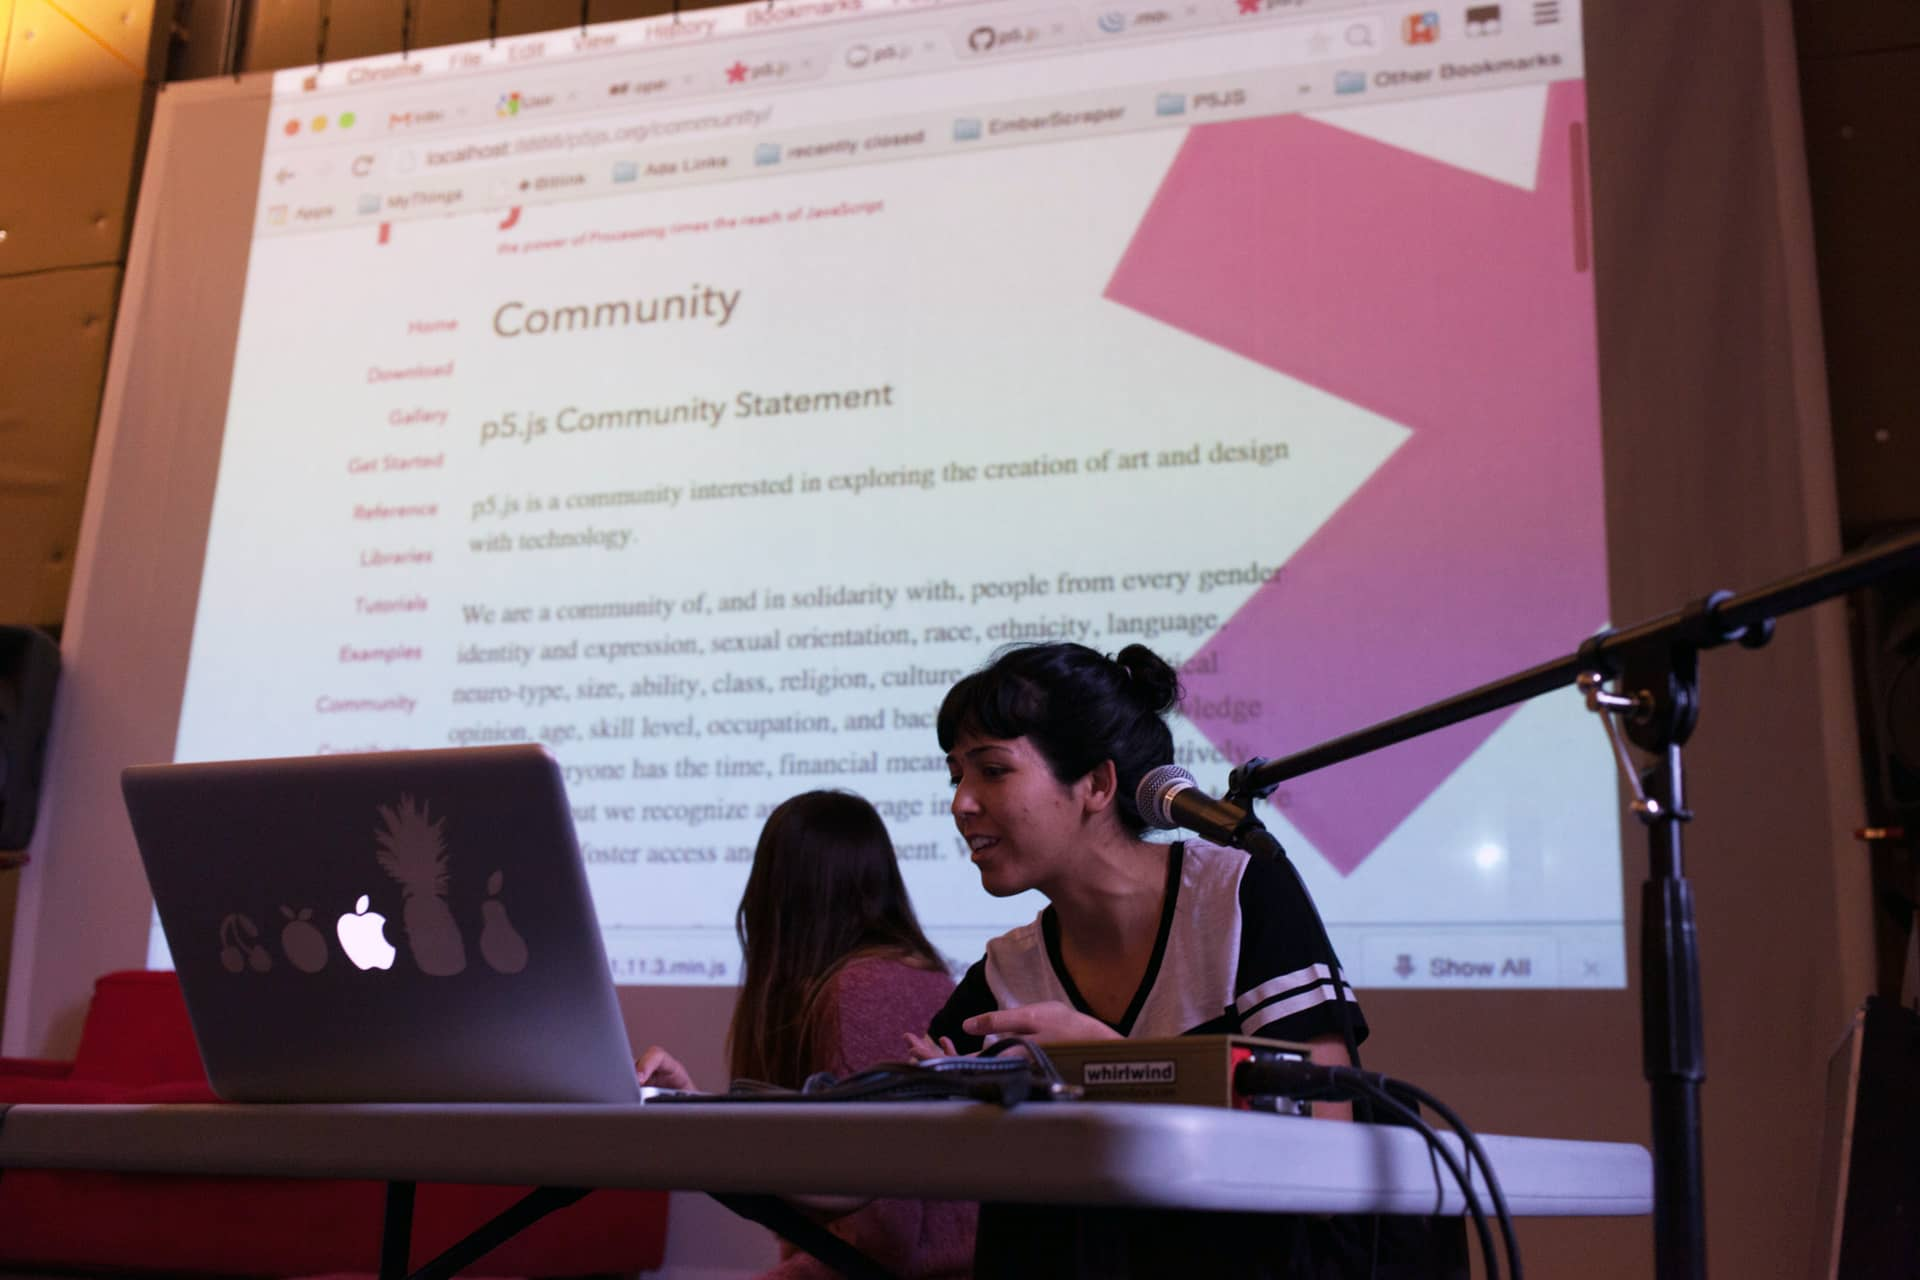 Woman presenting the p5.js community statement from her laptop""